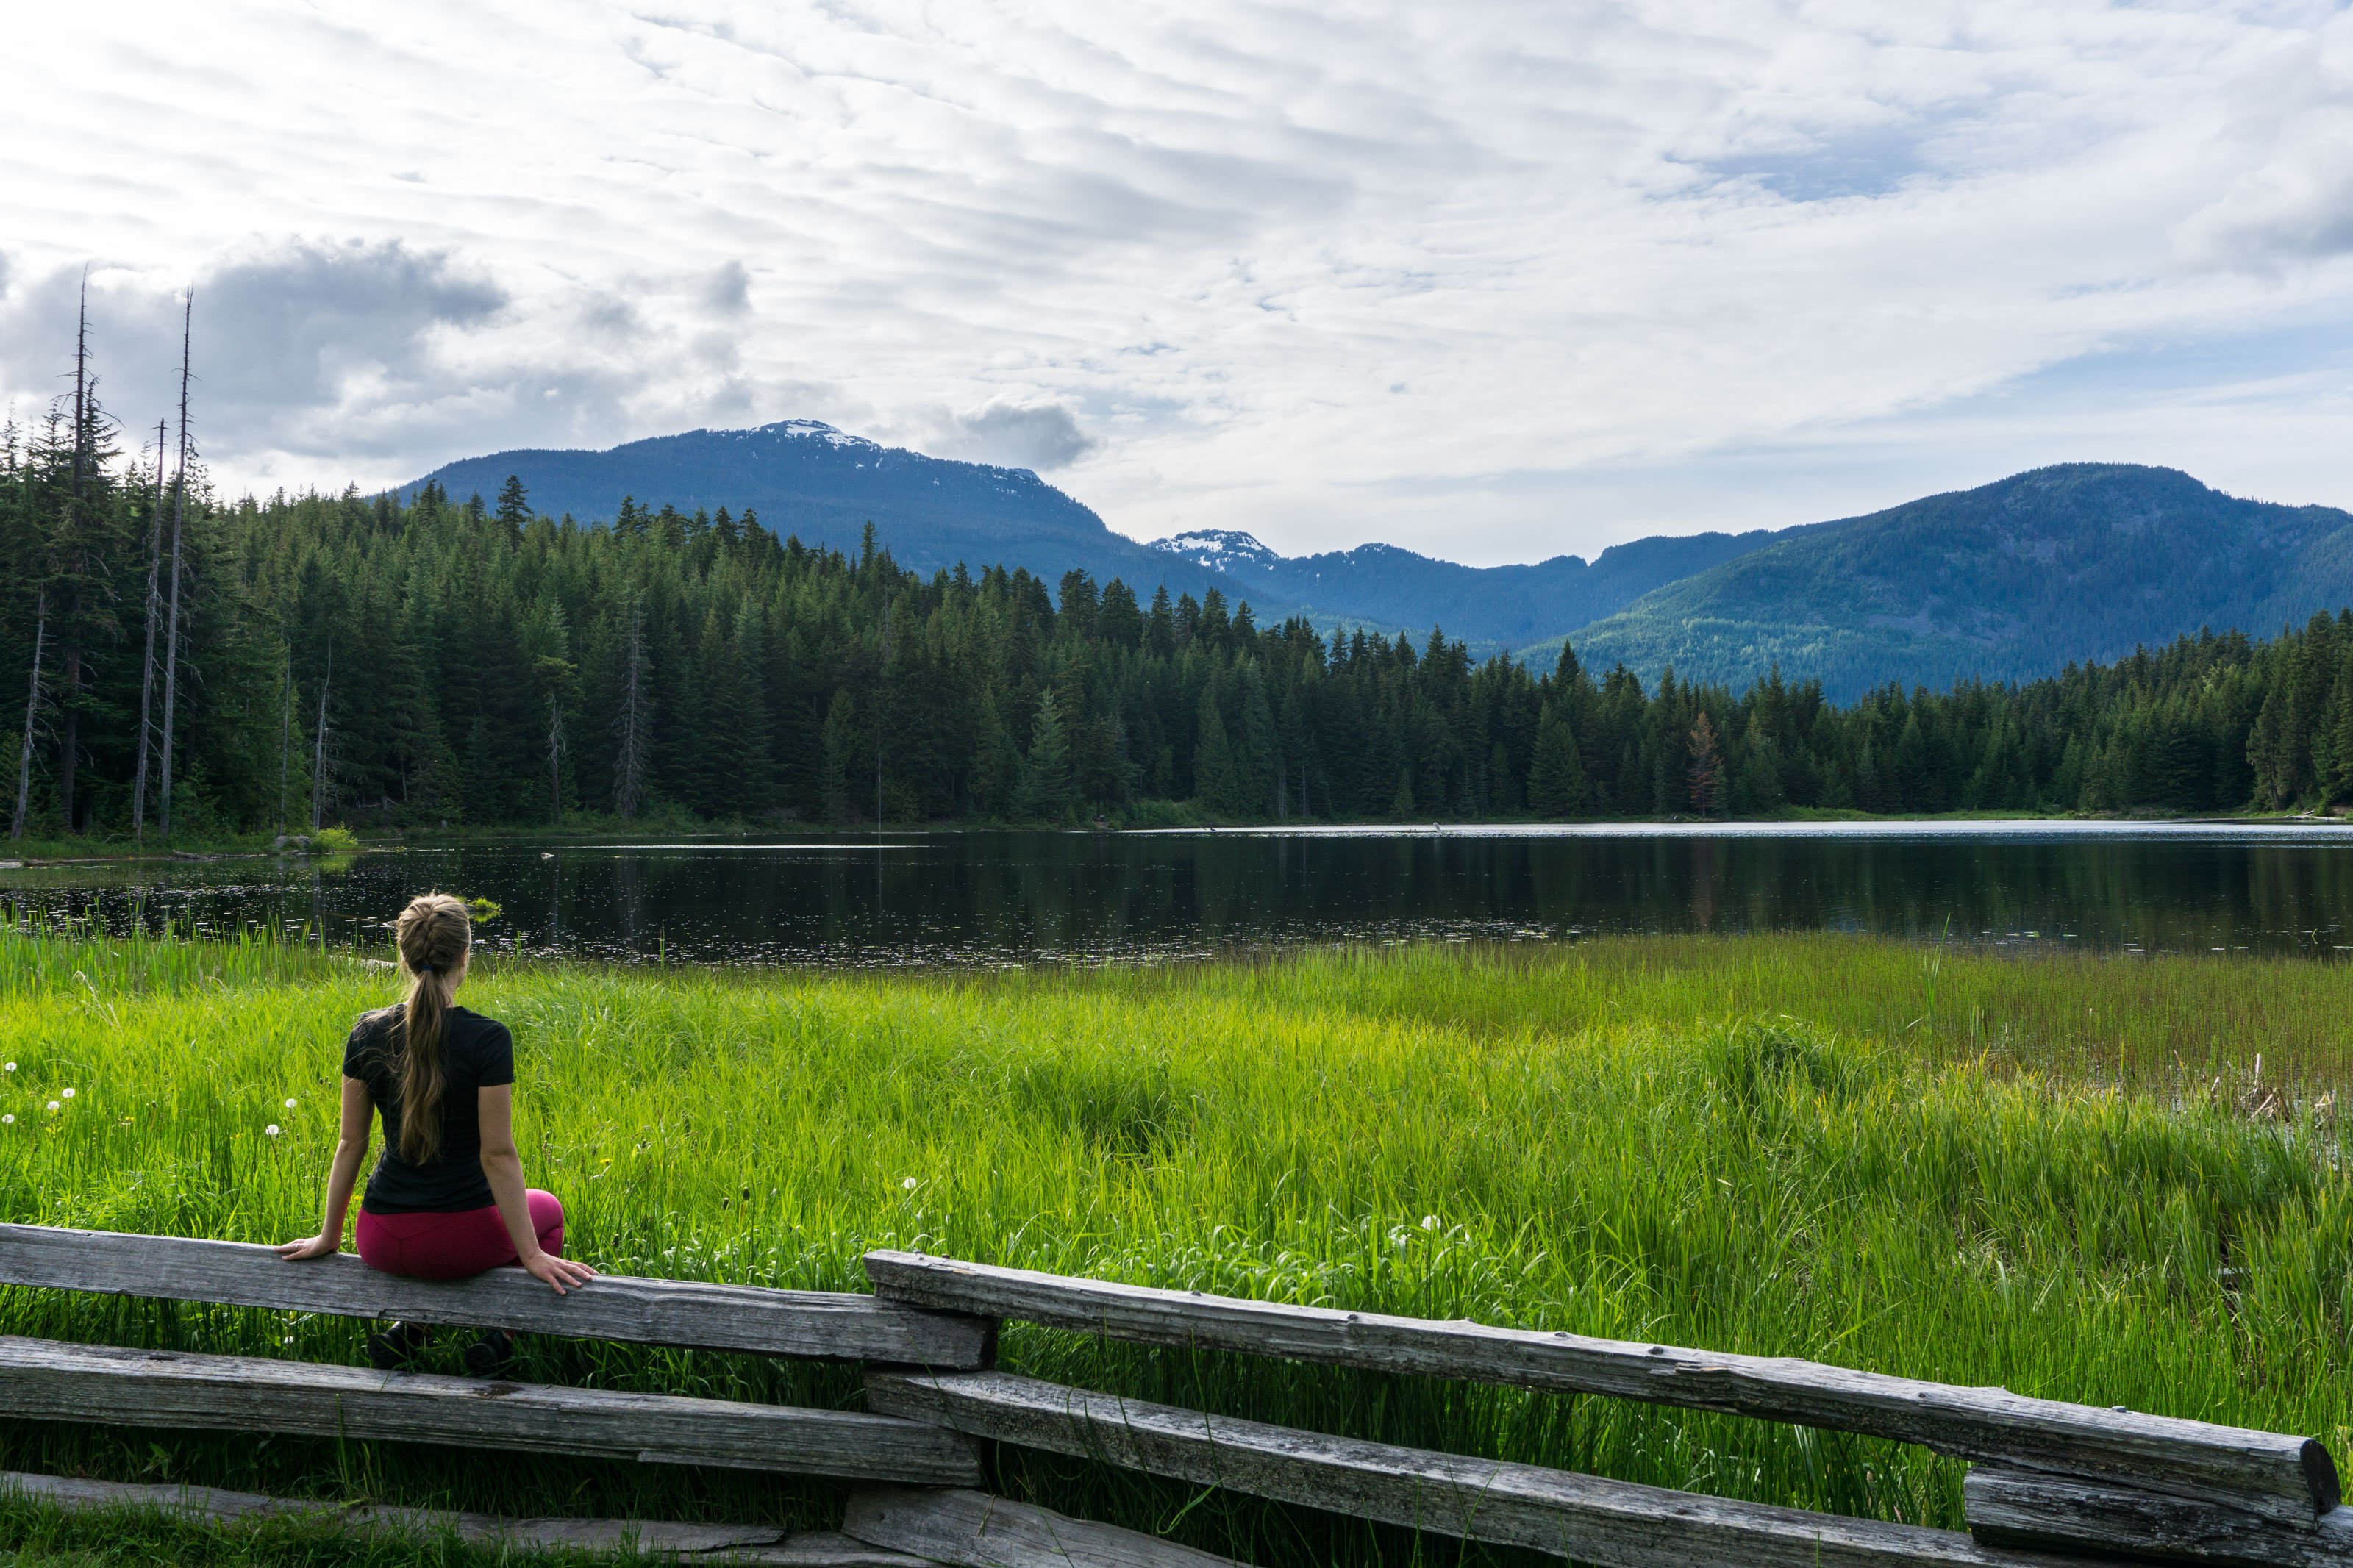 Pokus o Rainbow Lake a relax ve Whistleru